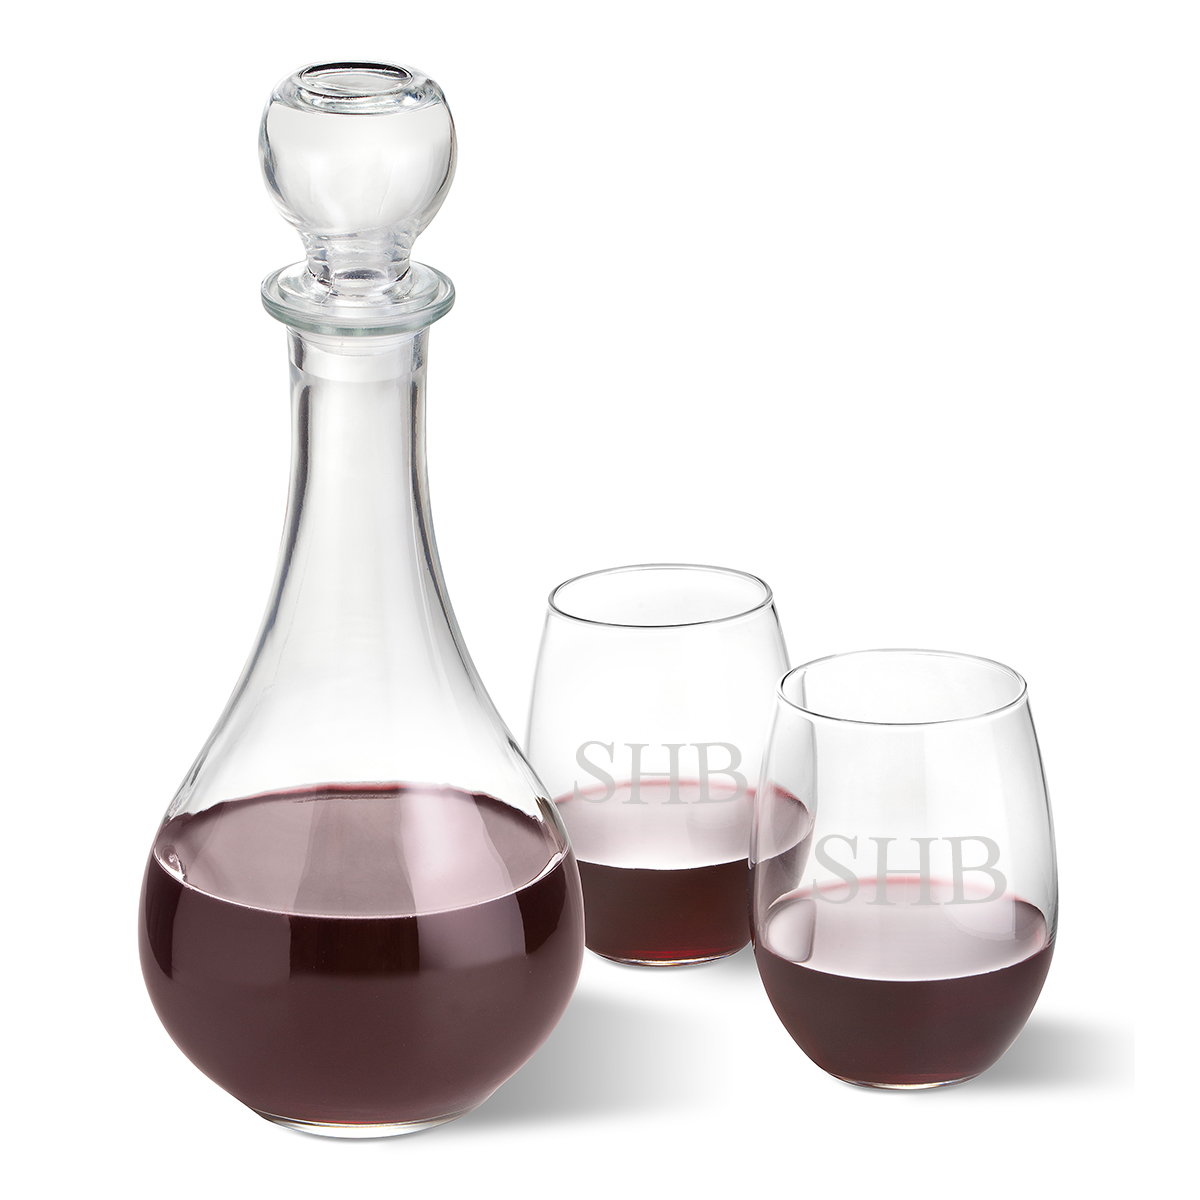 Bormioli Rocco Loto Wine Decanter with stopper and 2 Stemless Wine ...